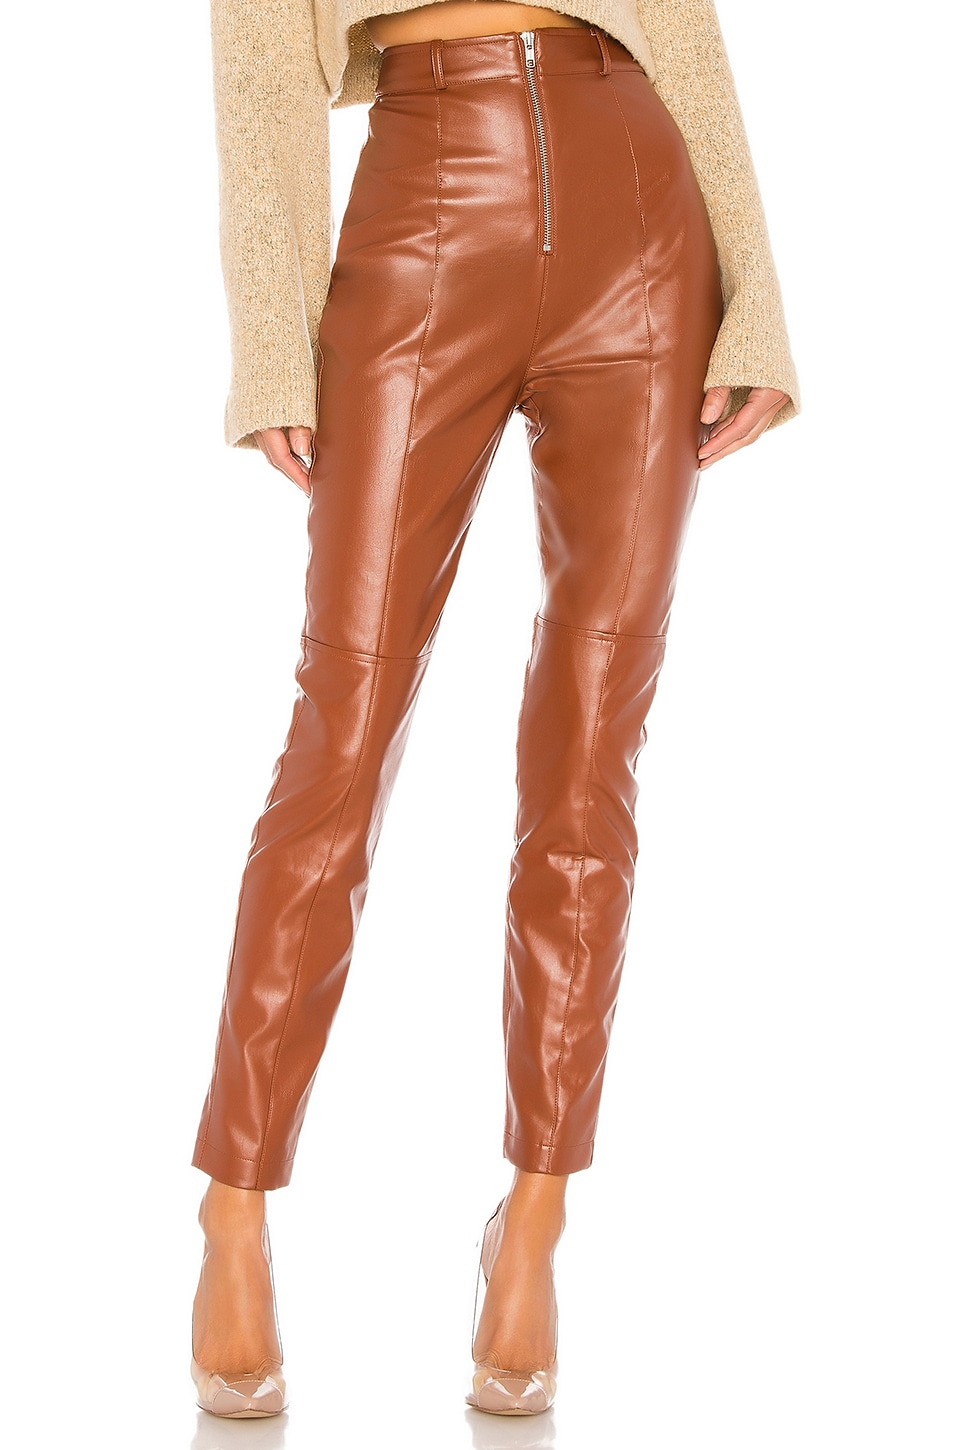 Lovers + Friends Georgie Pant in Chestnut Brown